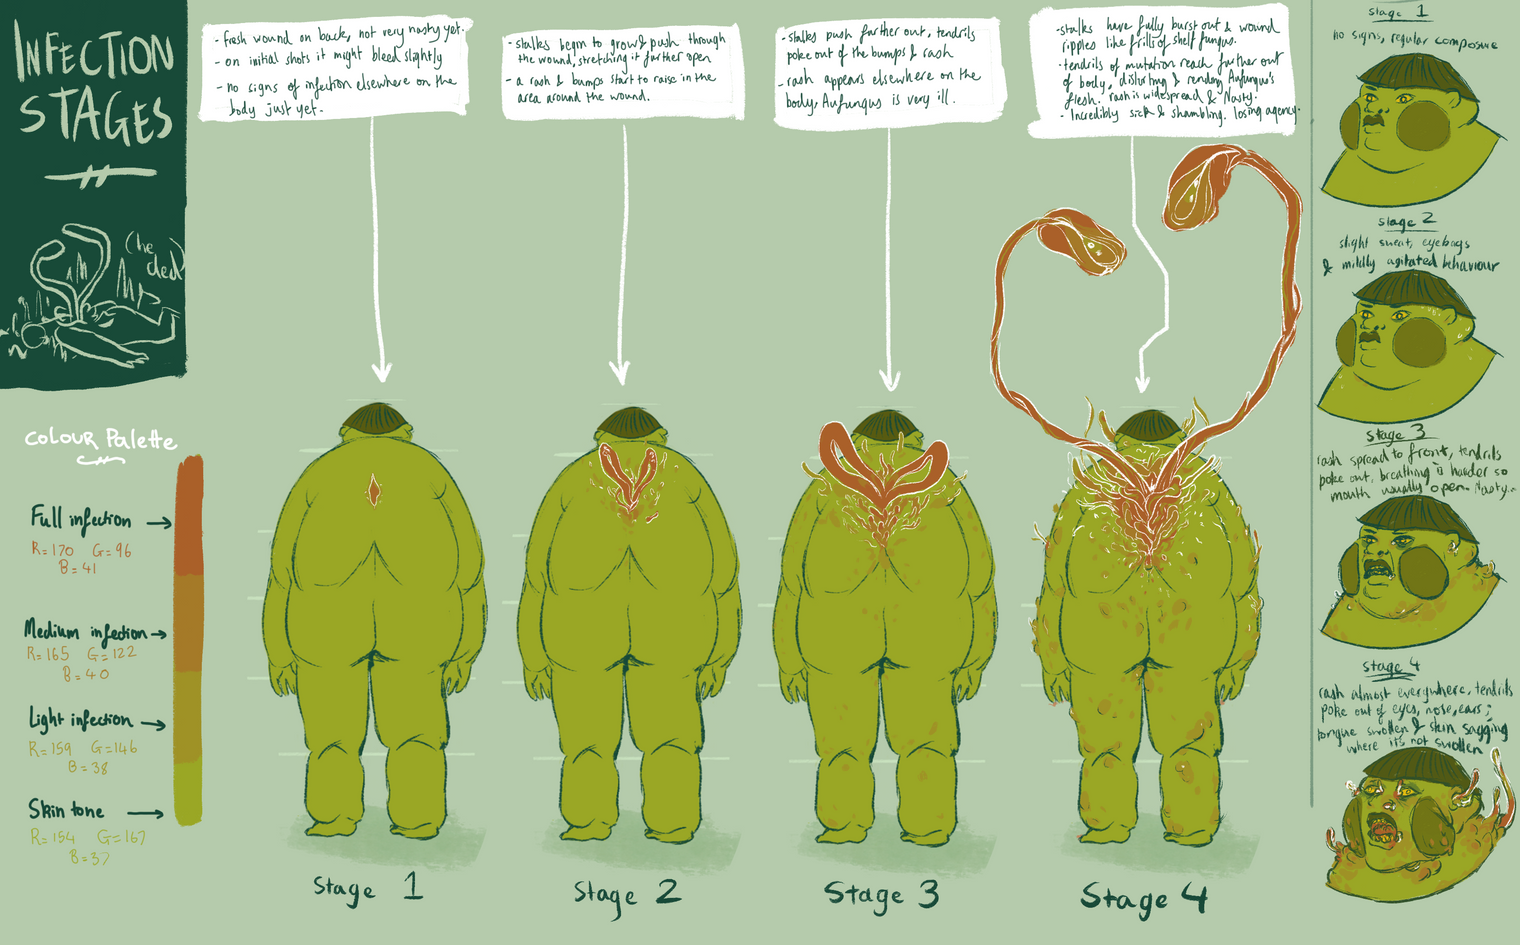 FRAGILE: infection stages